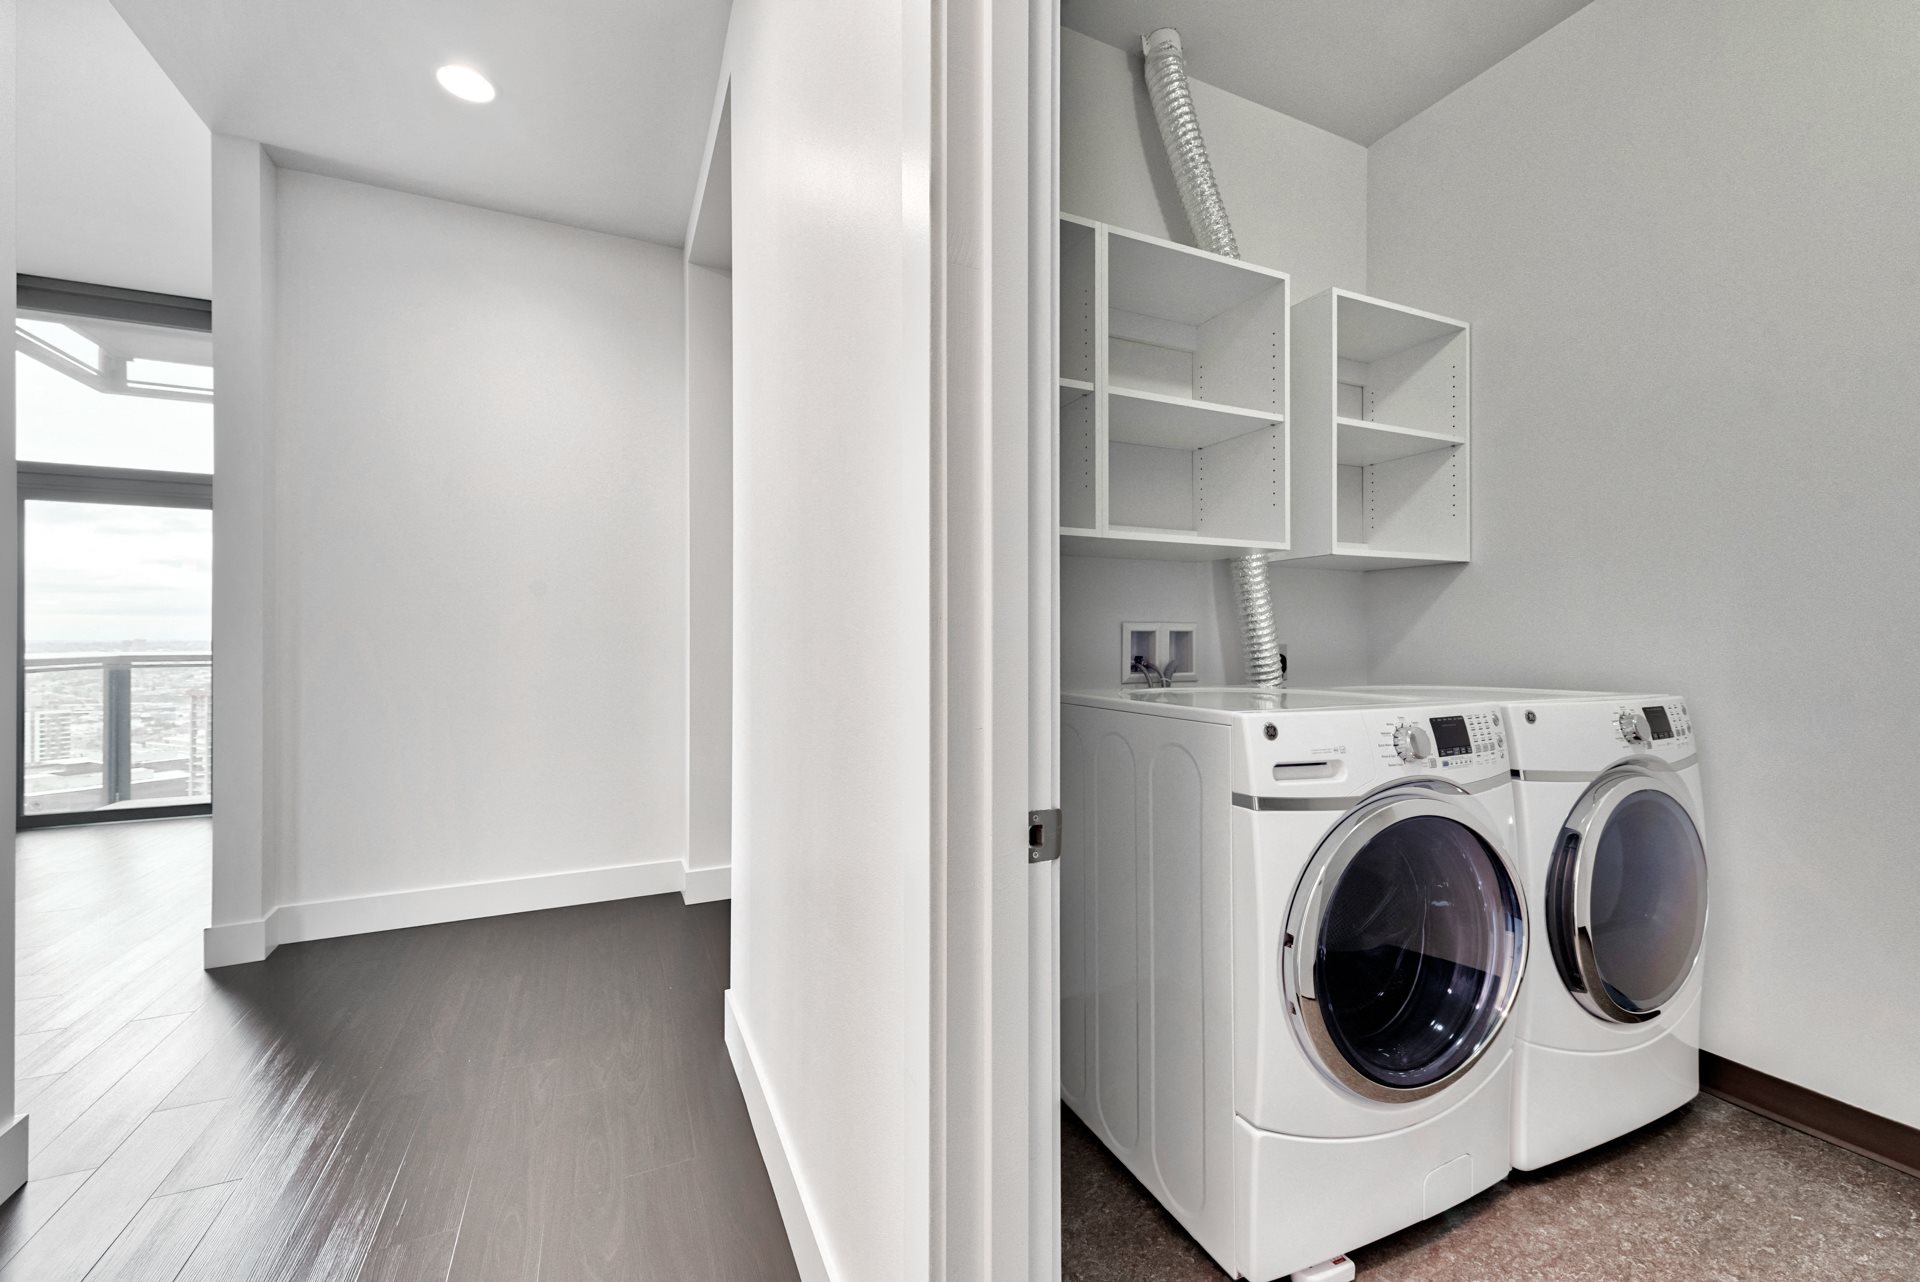 Laundry rooms with front loading side-by-side washer and dryers at Cirrus, Seattle, Washington